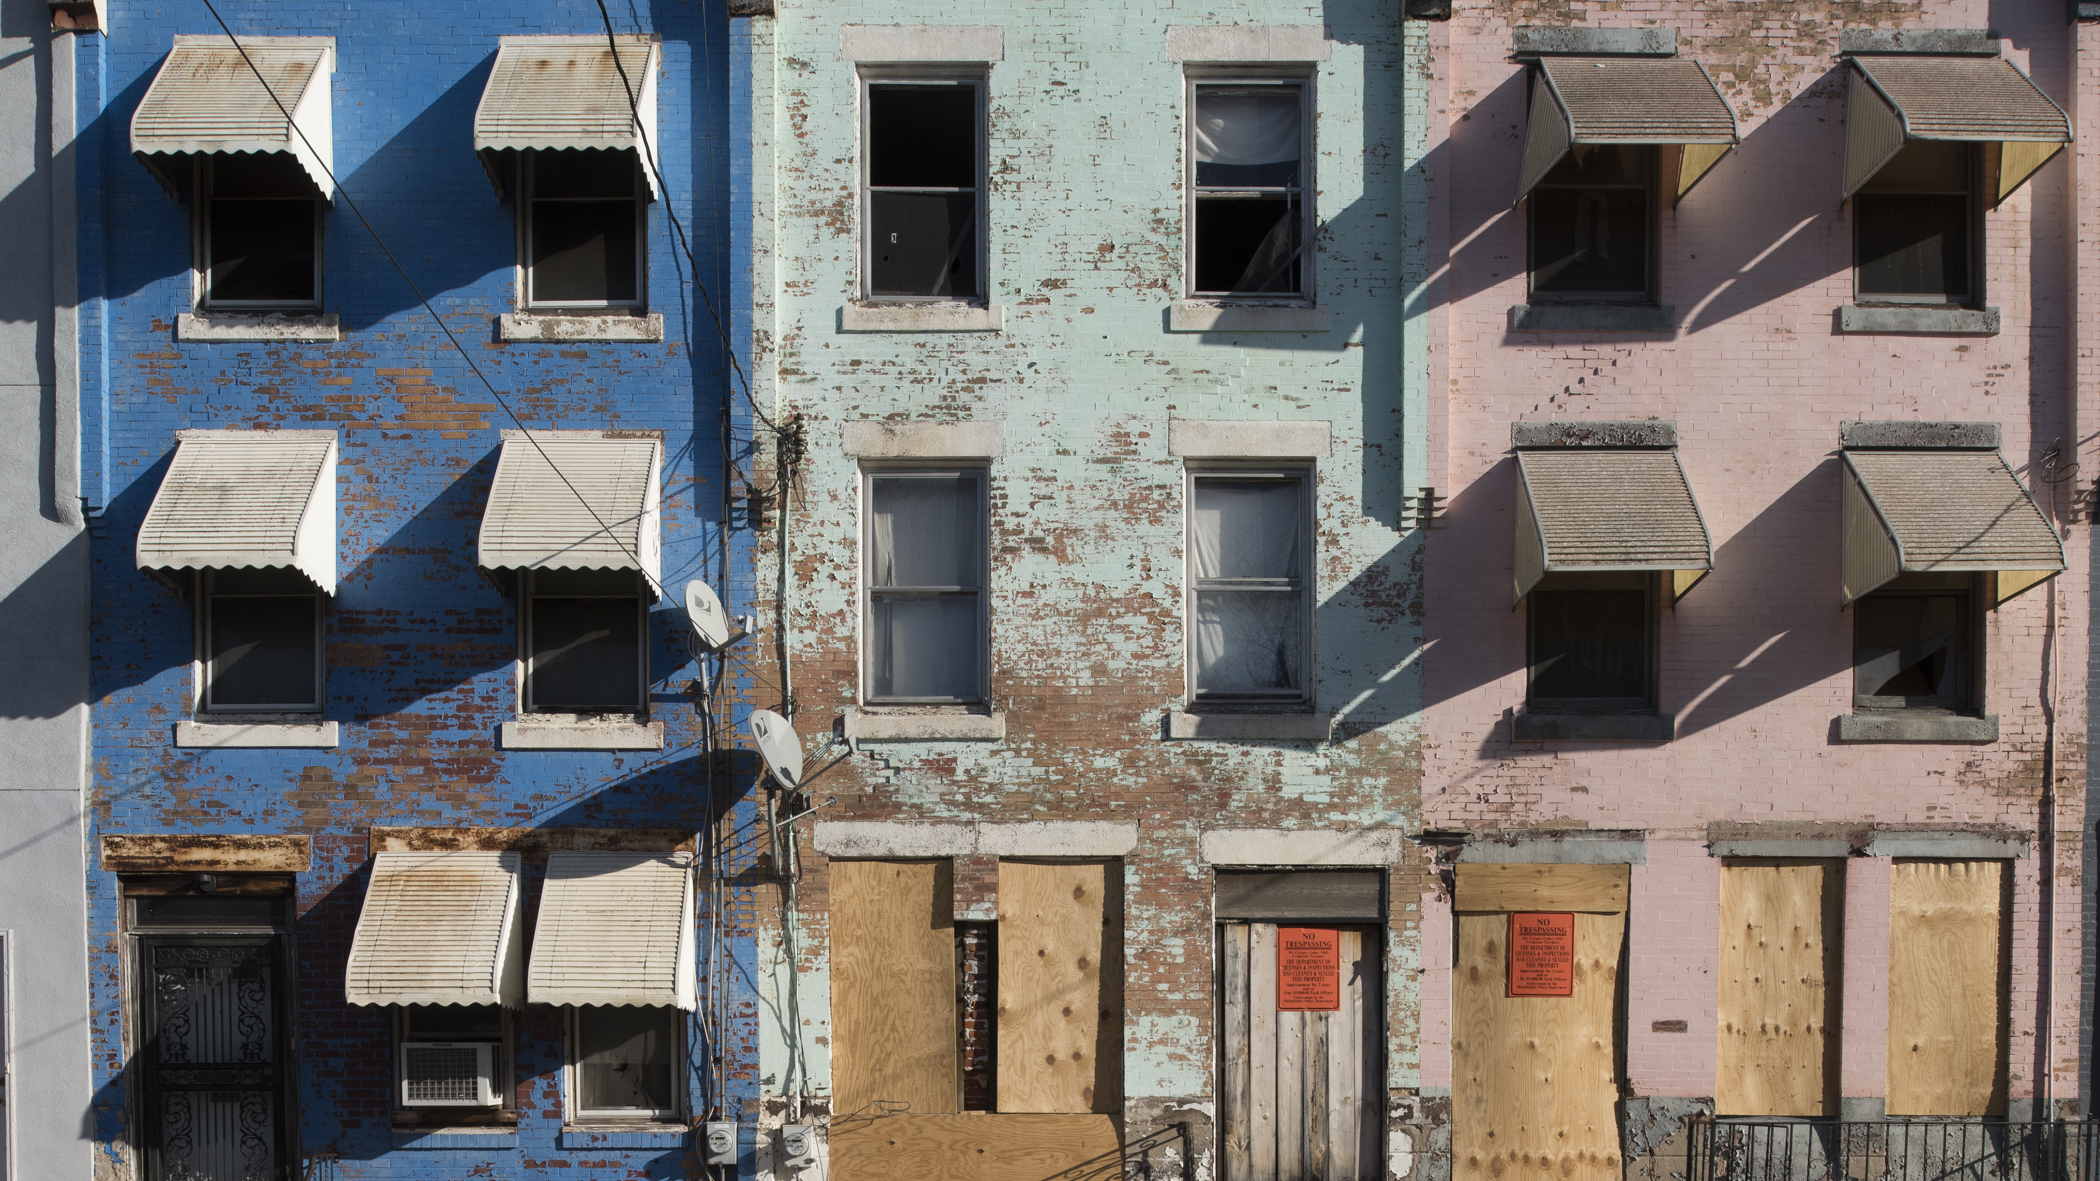 Old Homes High Poverty Make Philadelphia Housing Less Than Affordable For Some Whyy